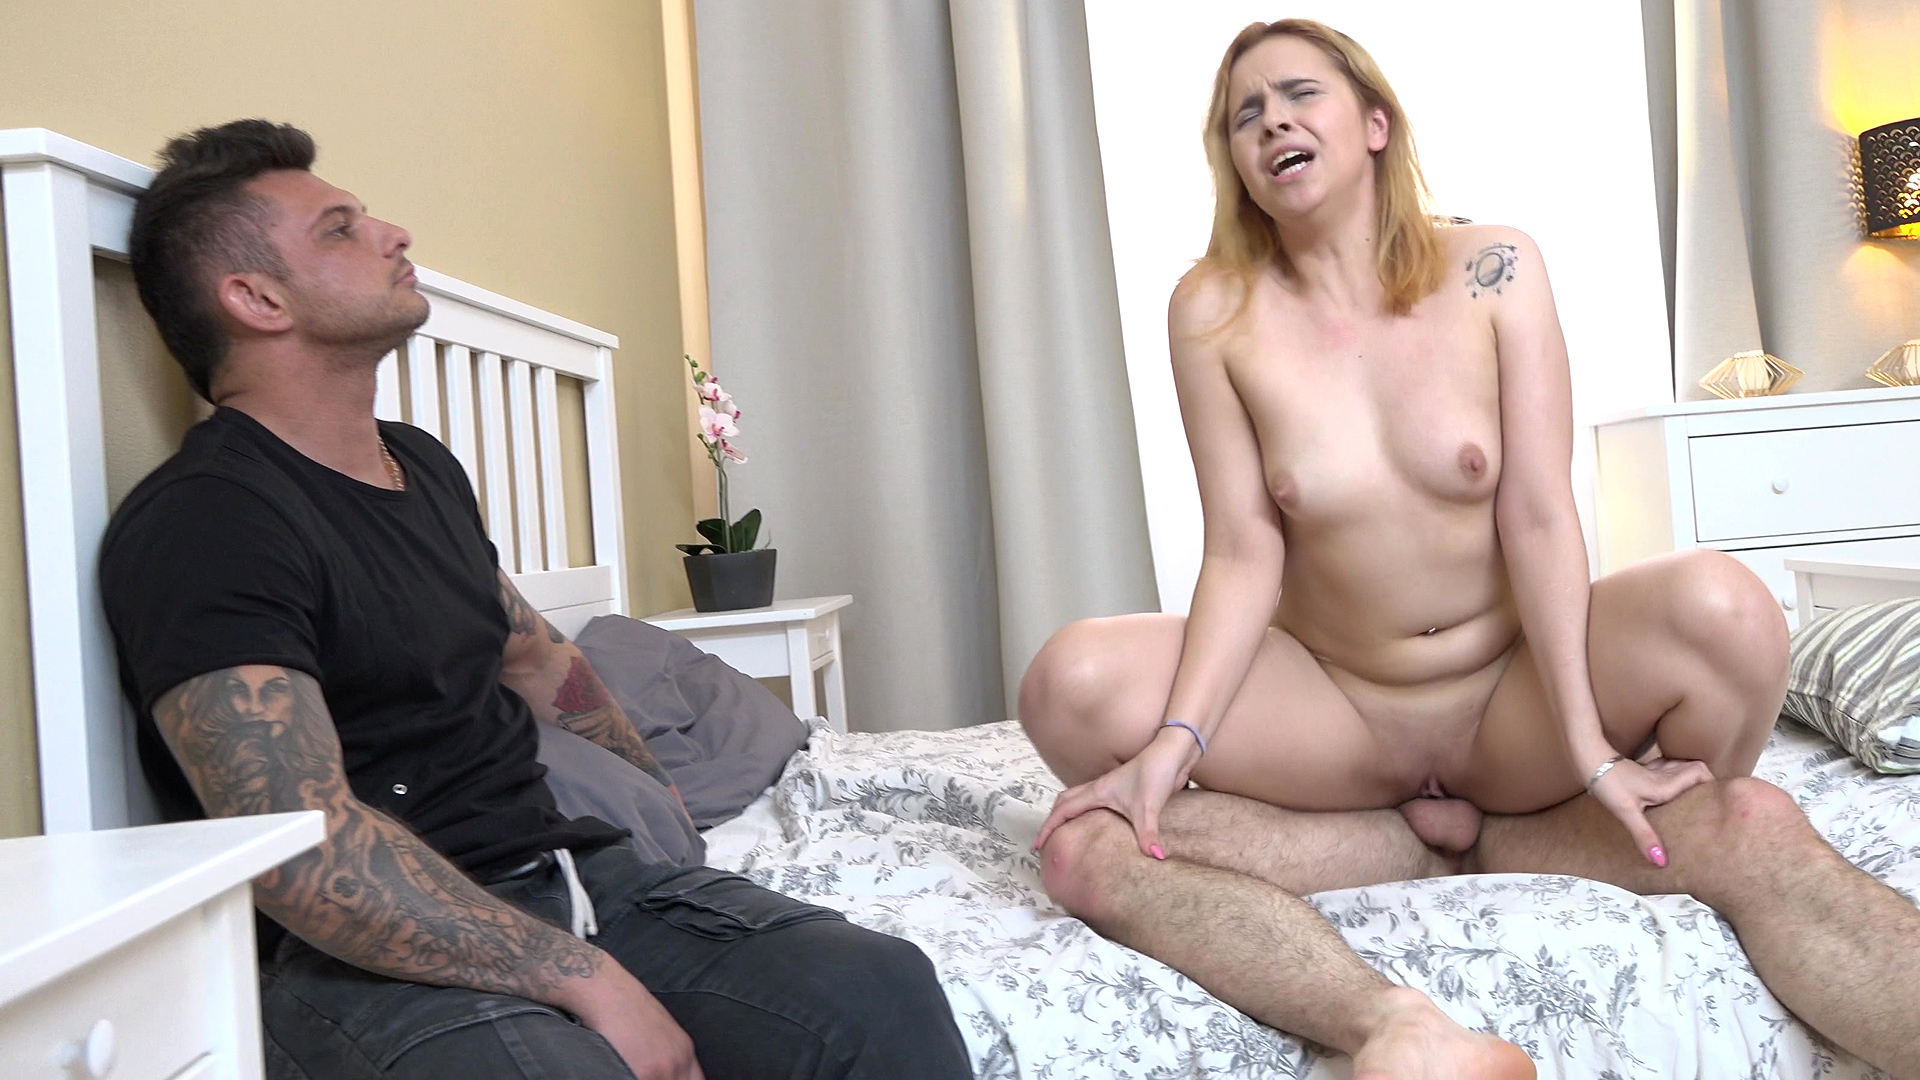 Redhead gf fuck for rent money - Karry Slot